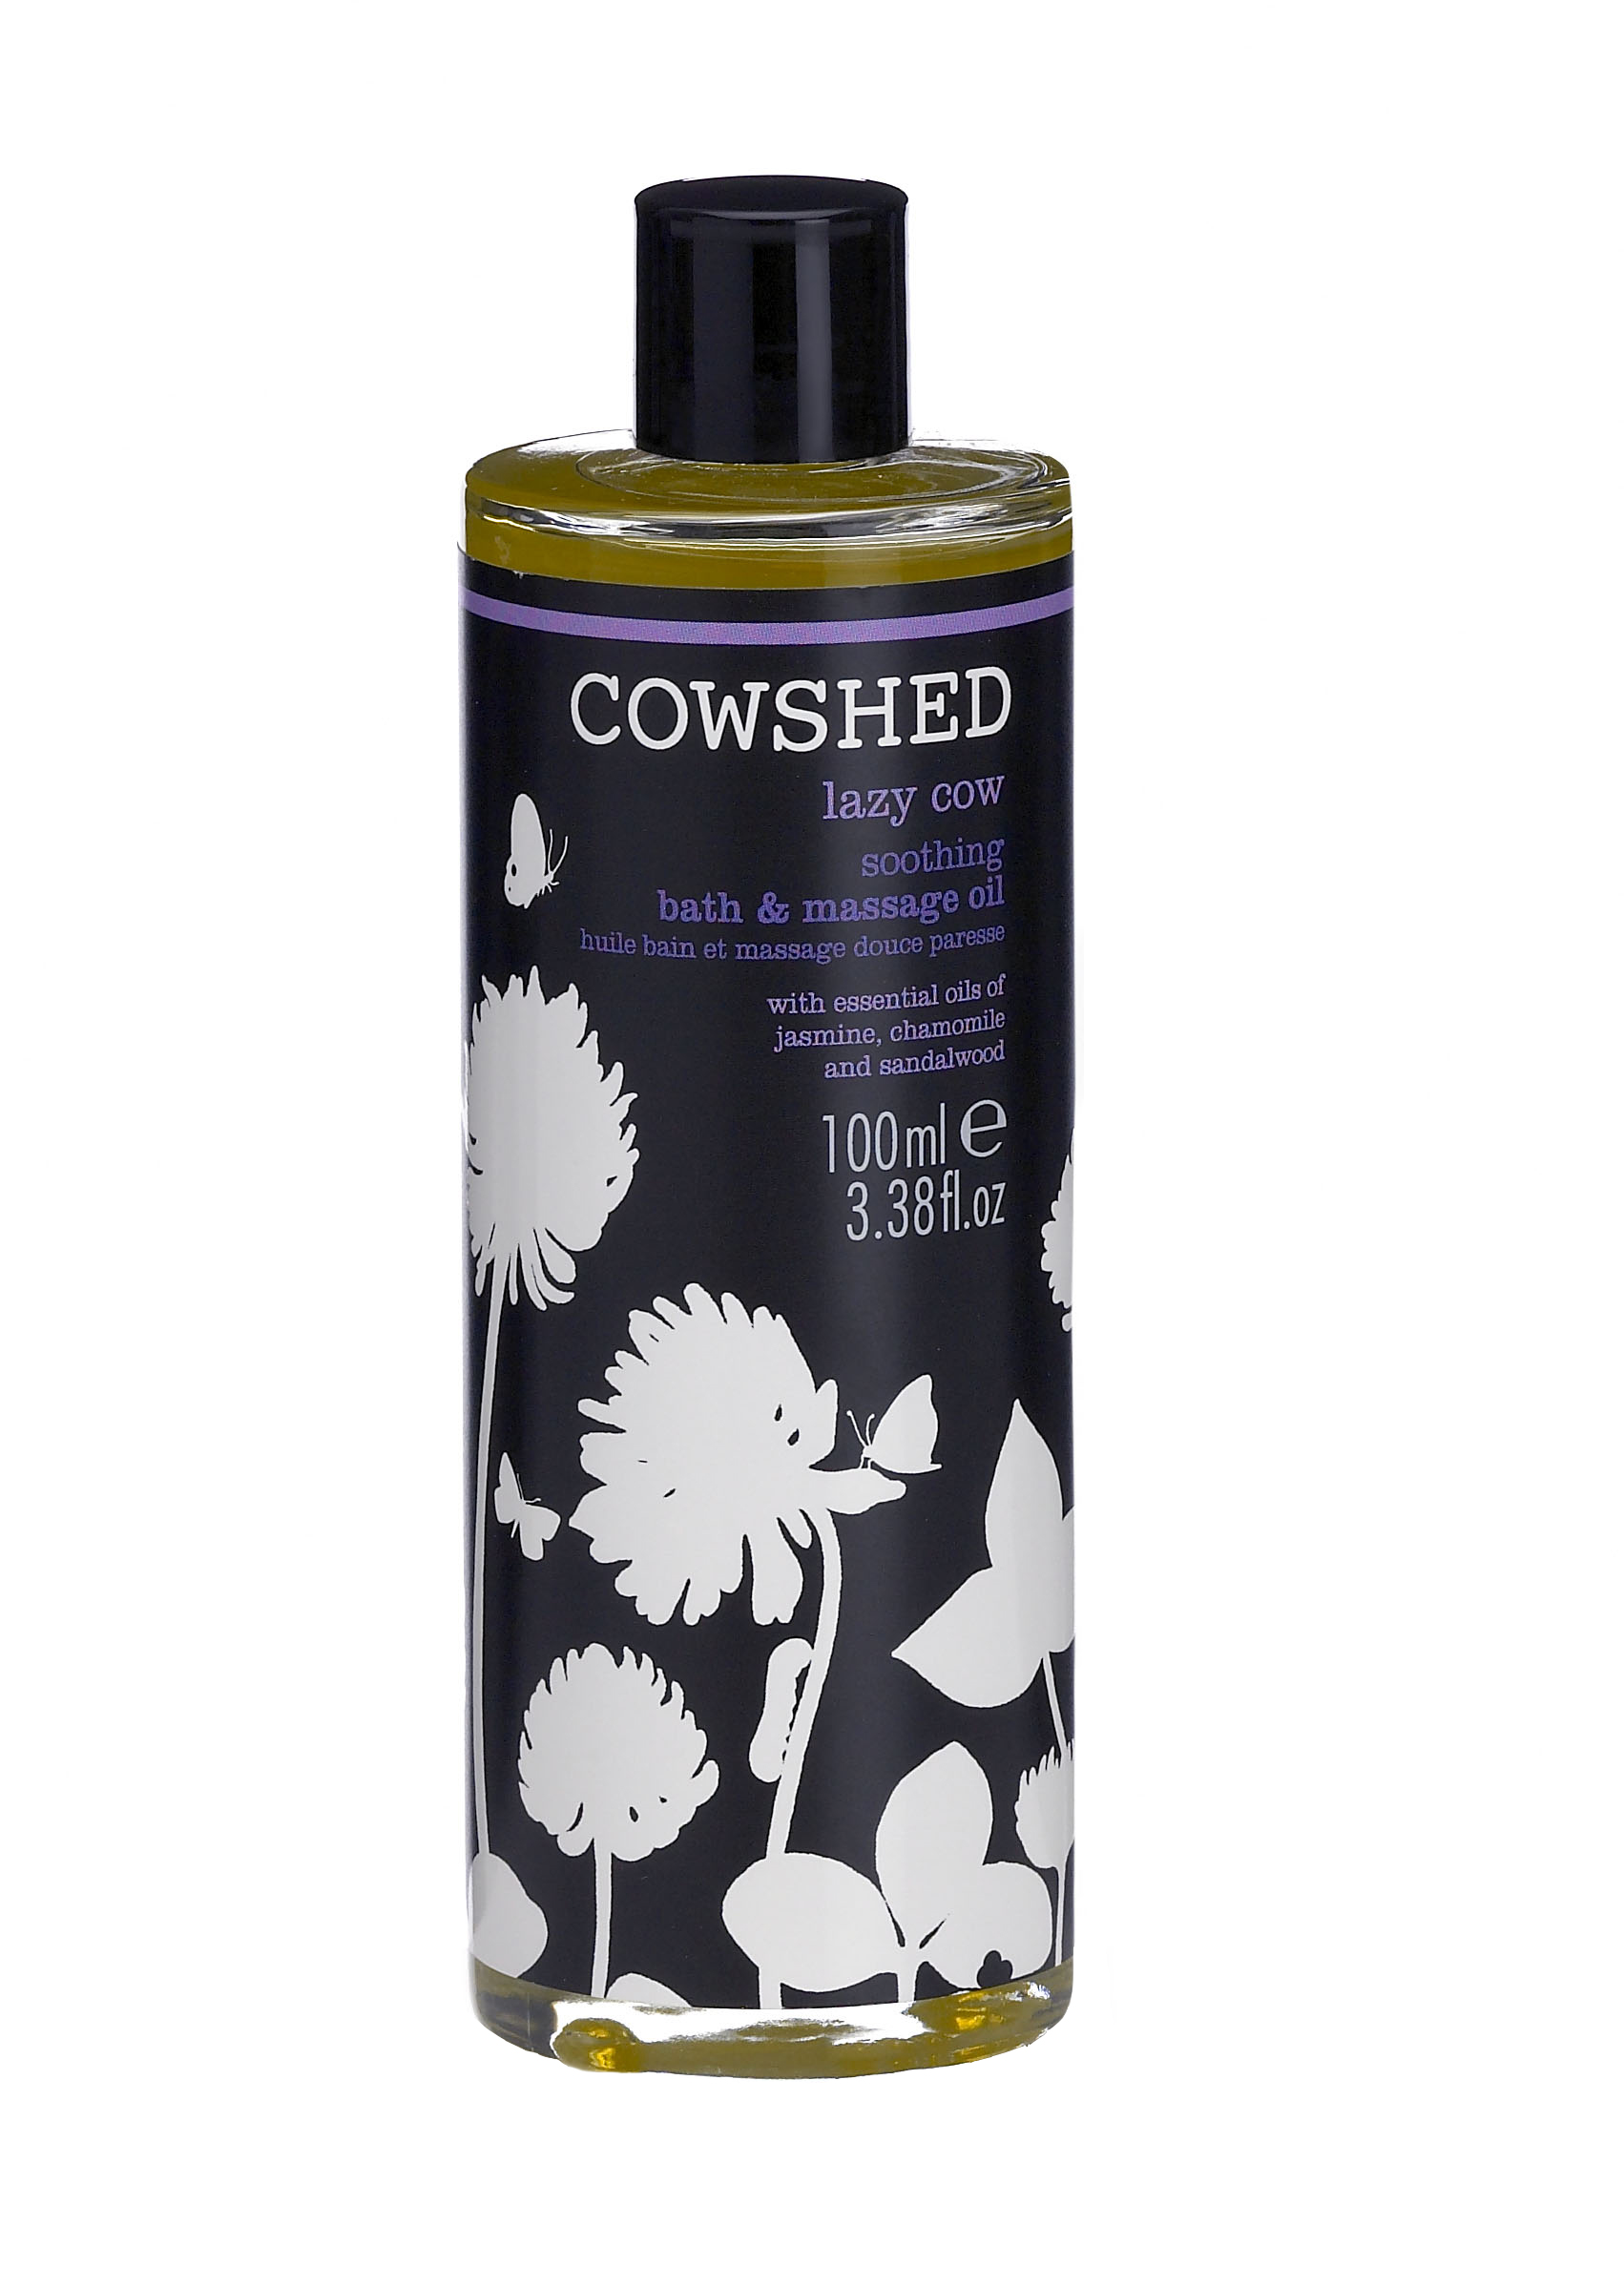 Cowshed lazy cow soothing bath & body oil 100 ml. fra N/A på spashop.dk